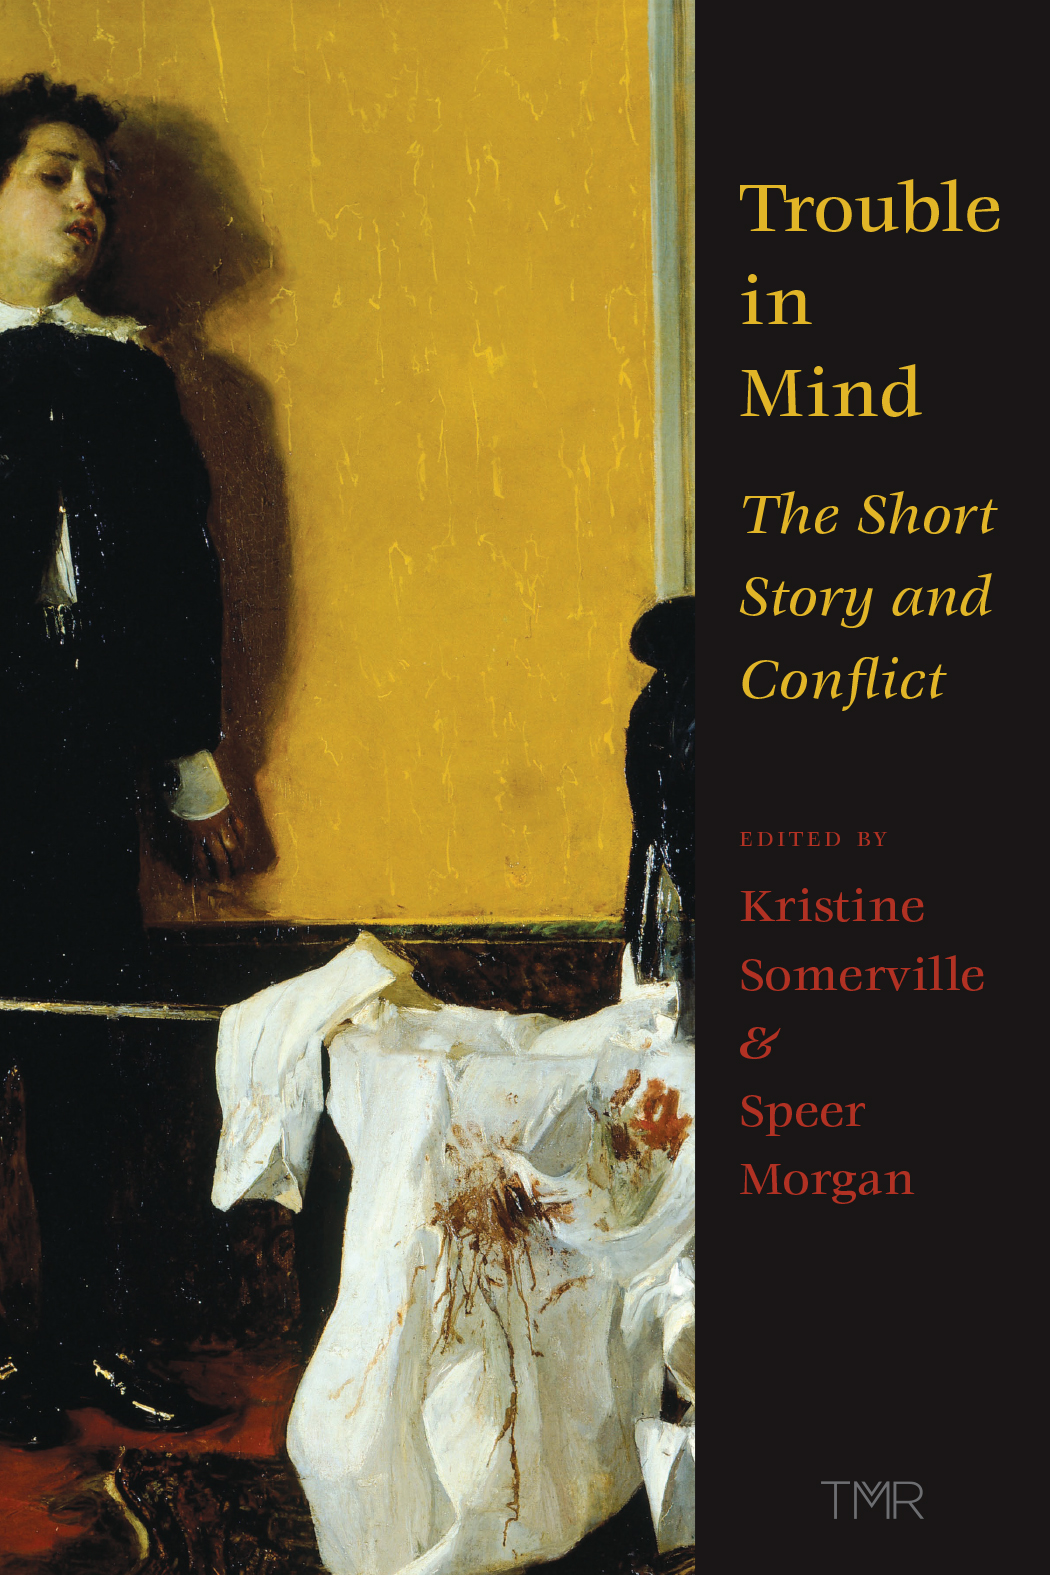 Trouble in Mind: the Short Story and Conflict